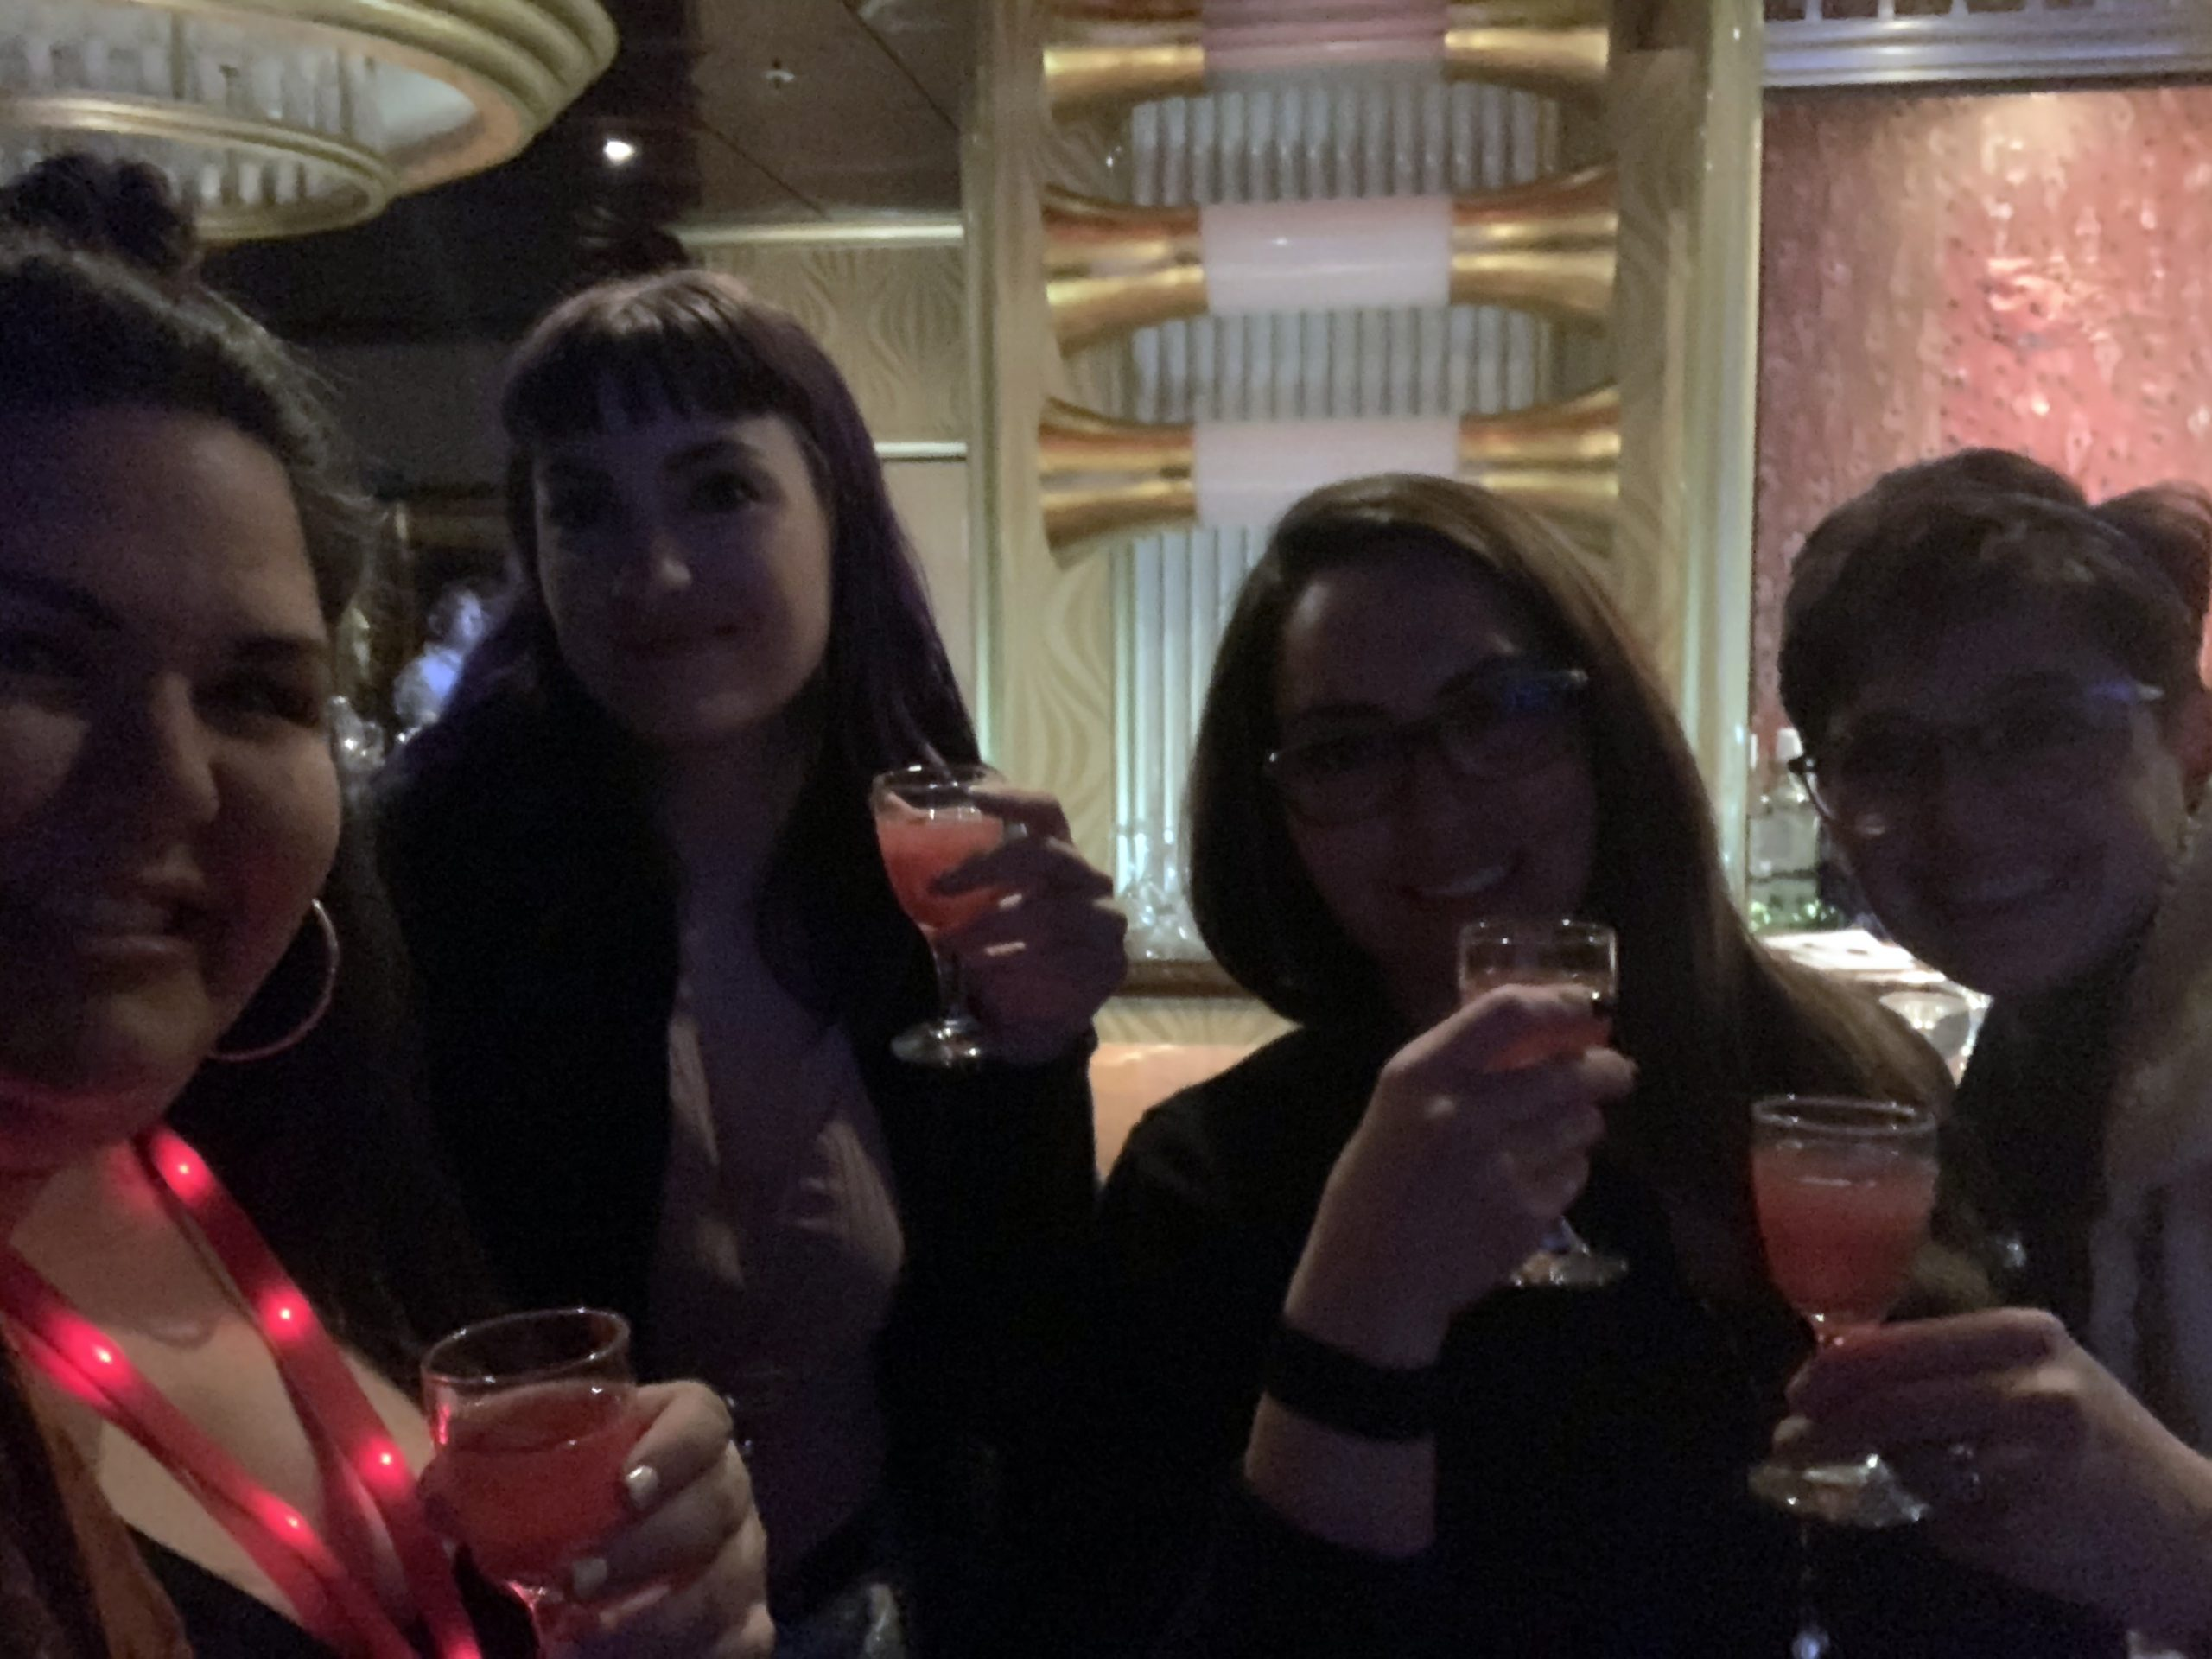 Four sisters smiling and about to have a shot together at the comedy show aboard Carnival Inspiration.